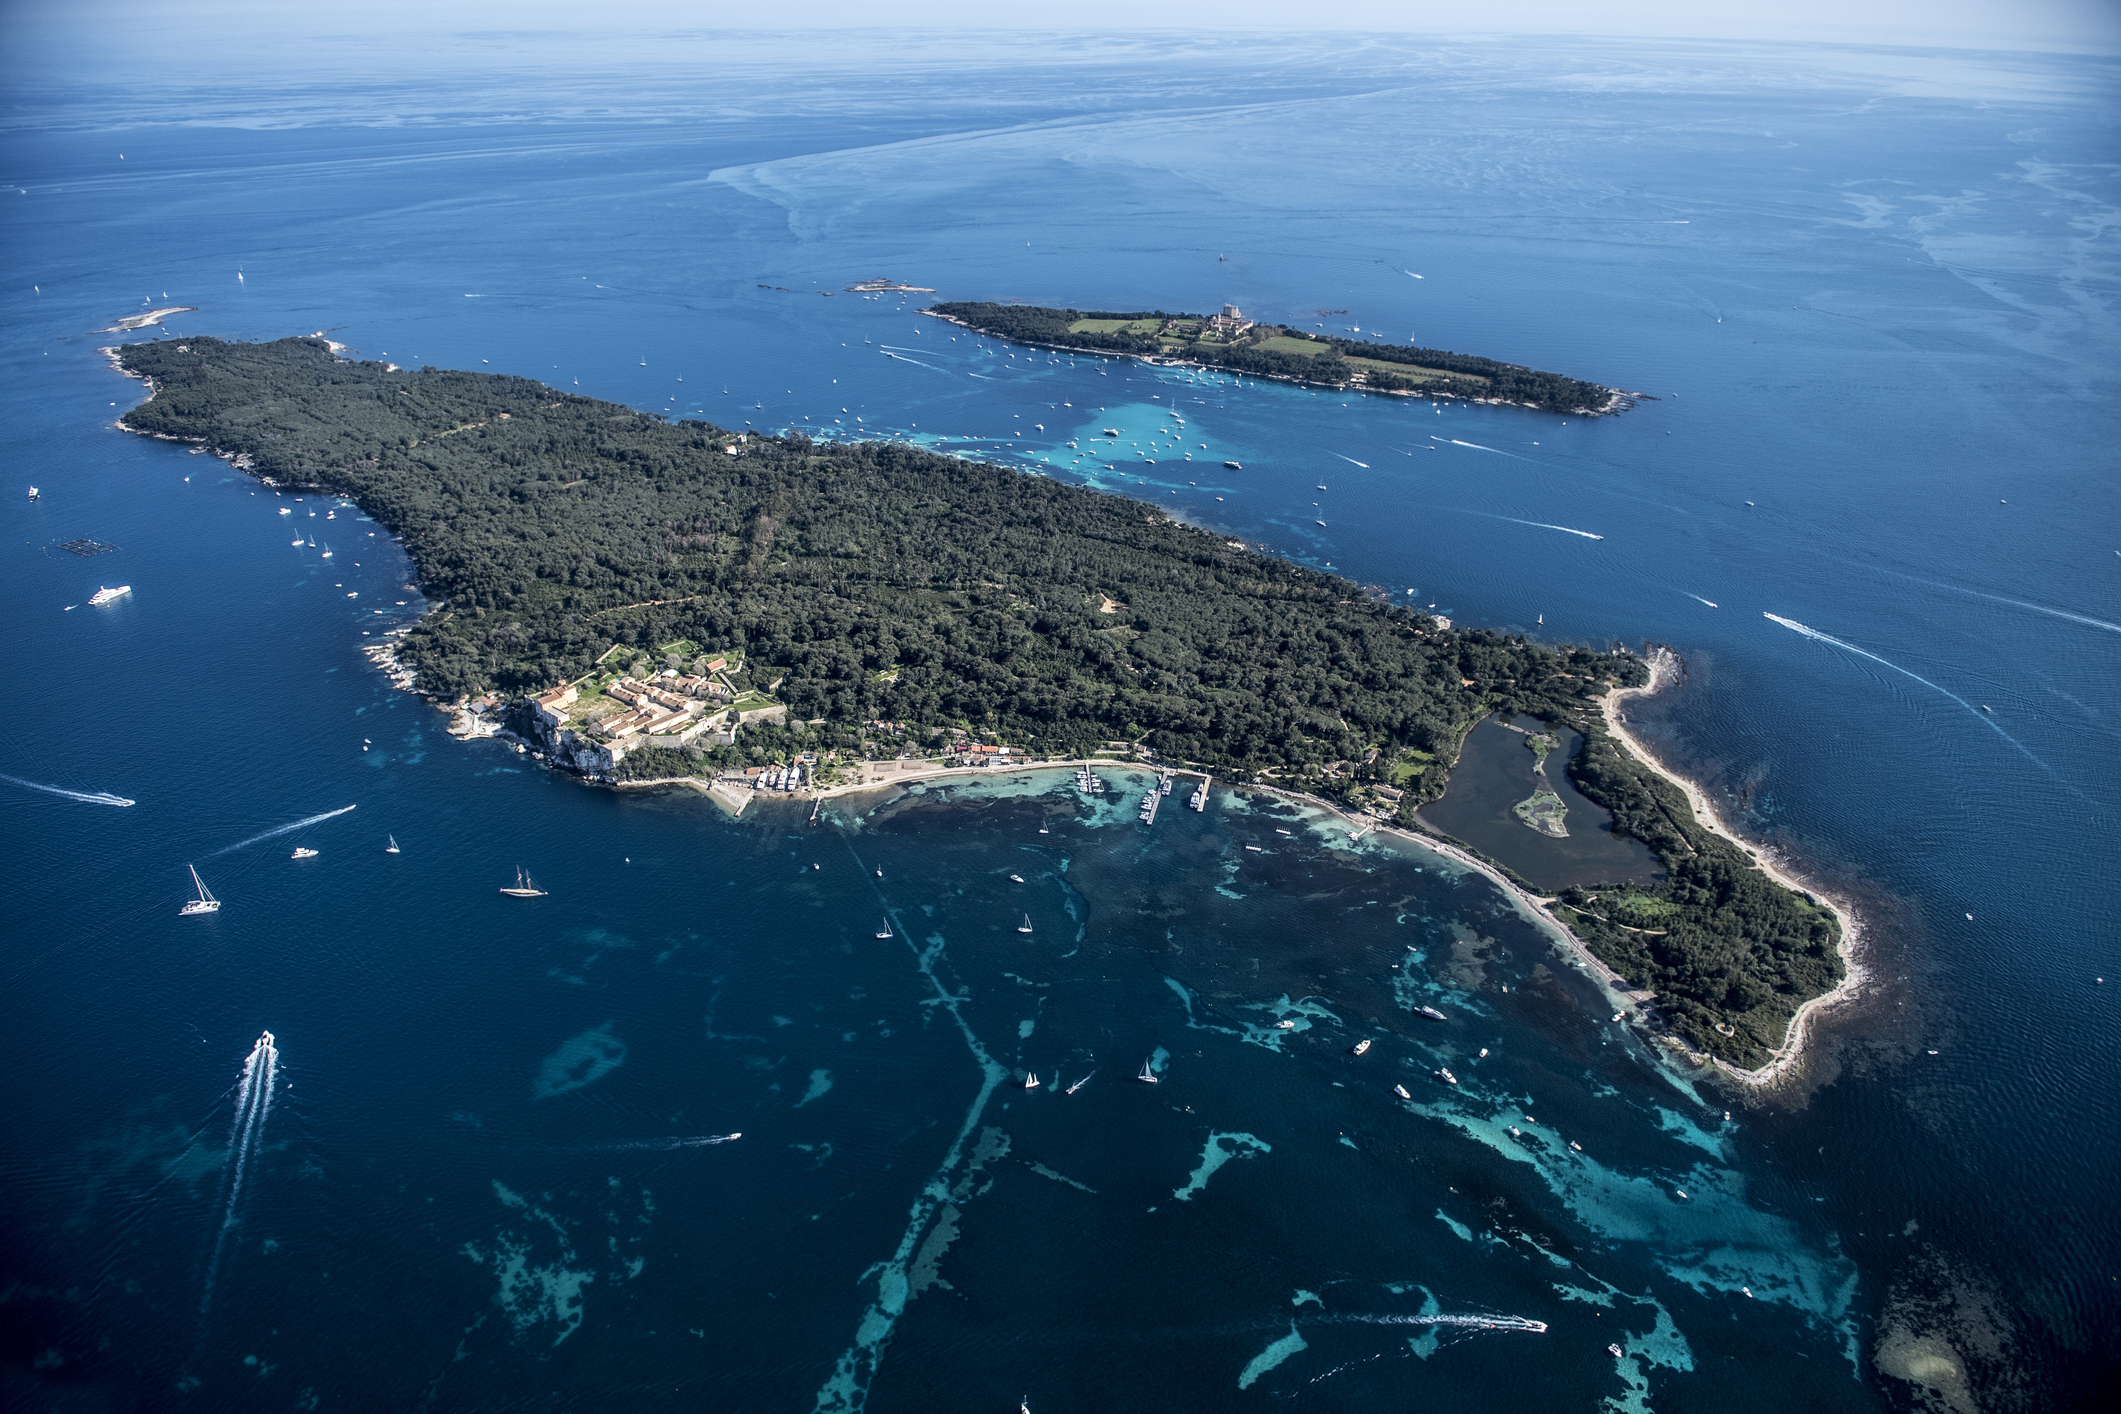 Aerial of Iles des Lerins National Park, French Riviera